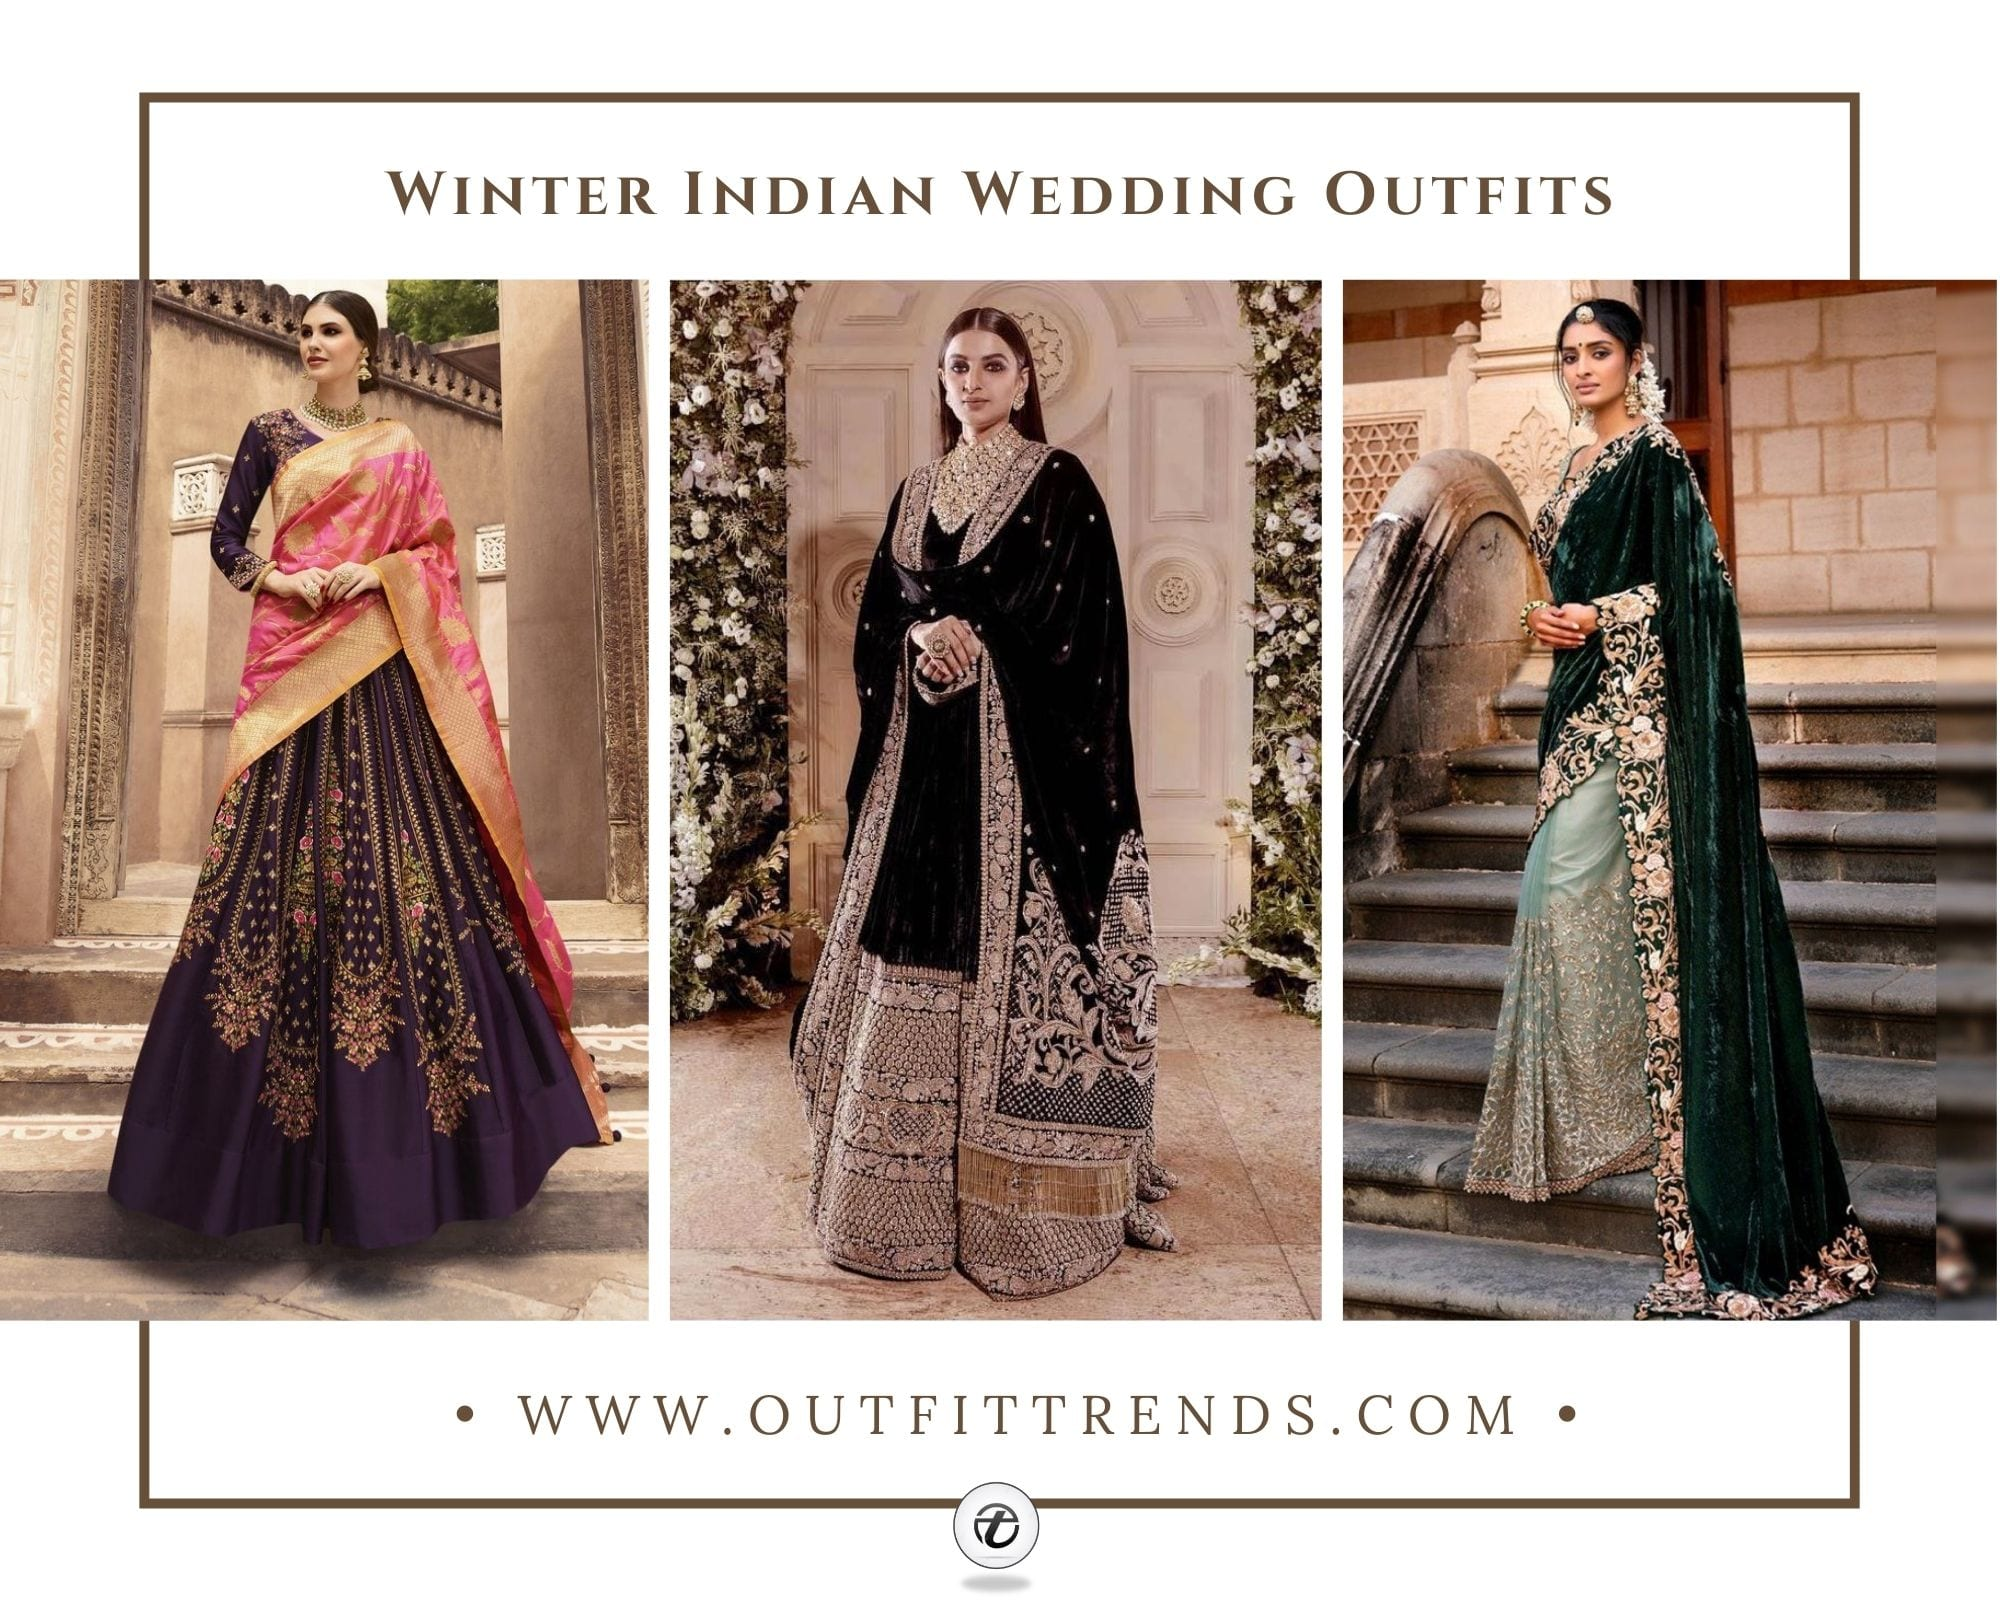 20 Ideas on What to Wear to an Indian Winter Wedding